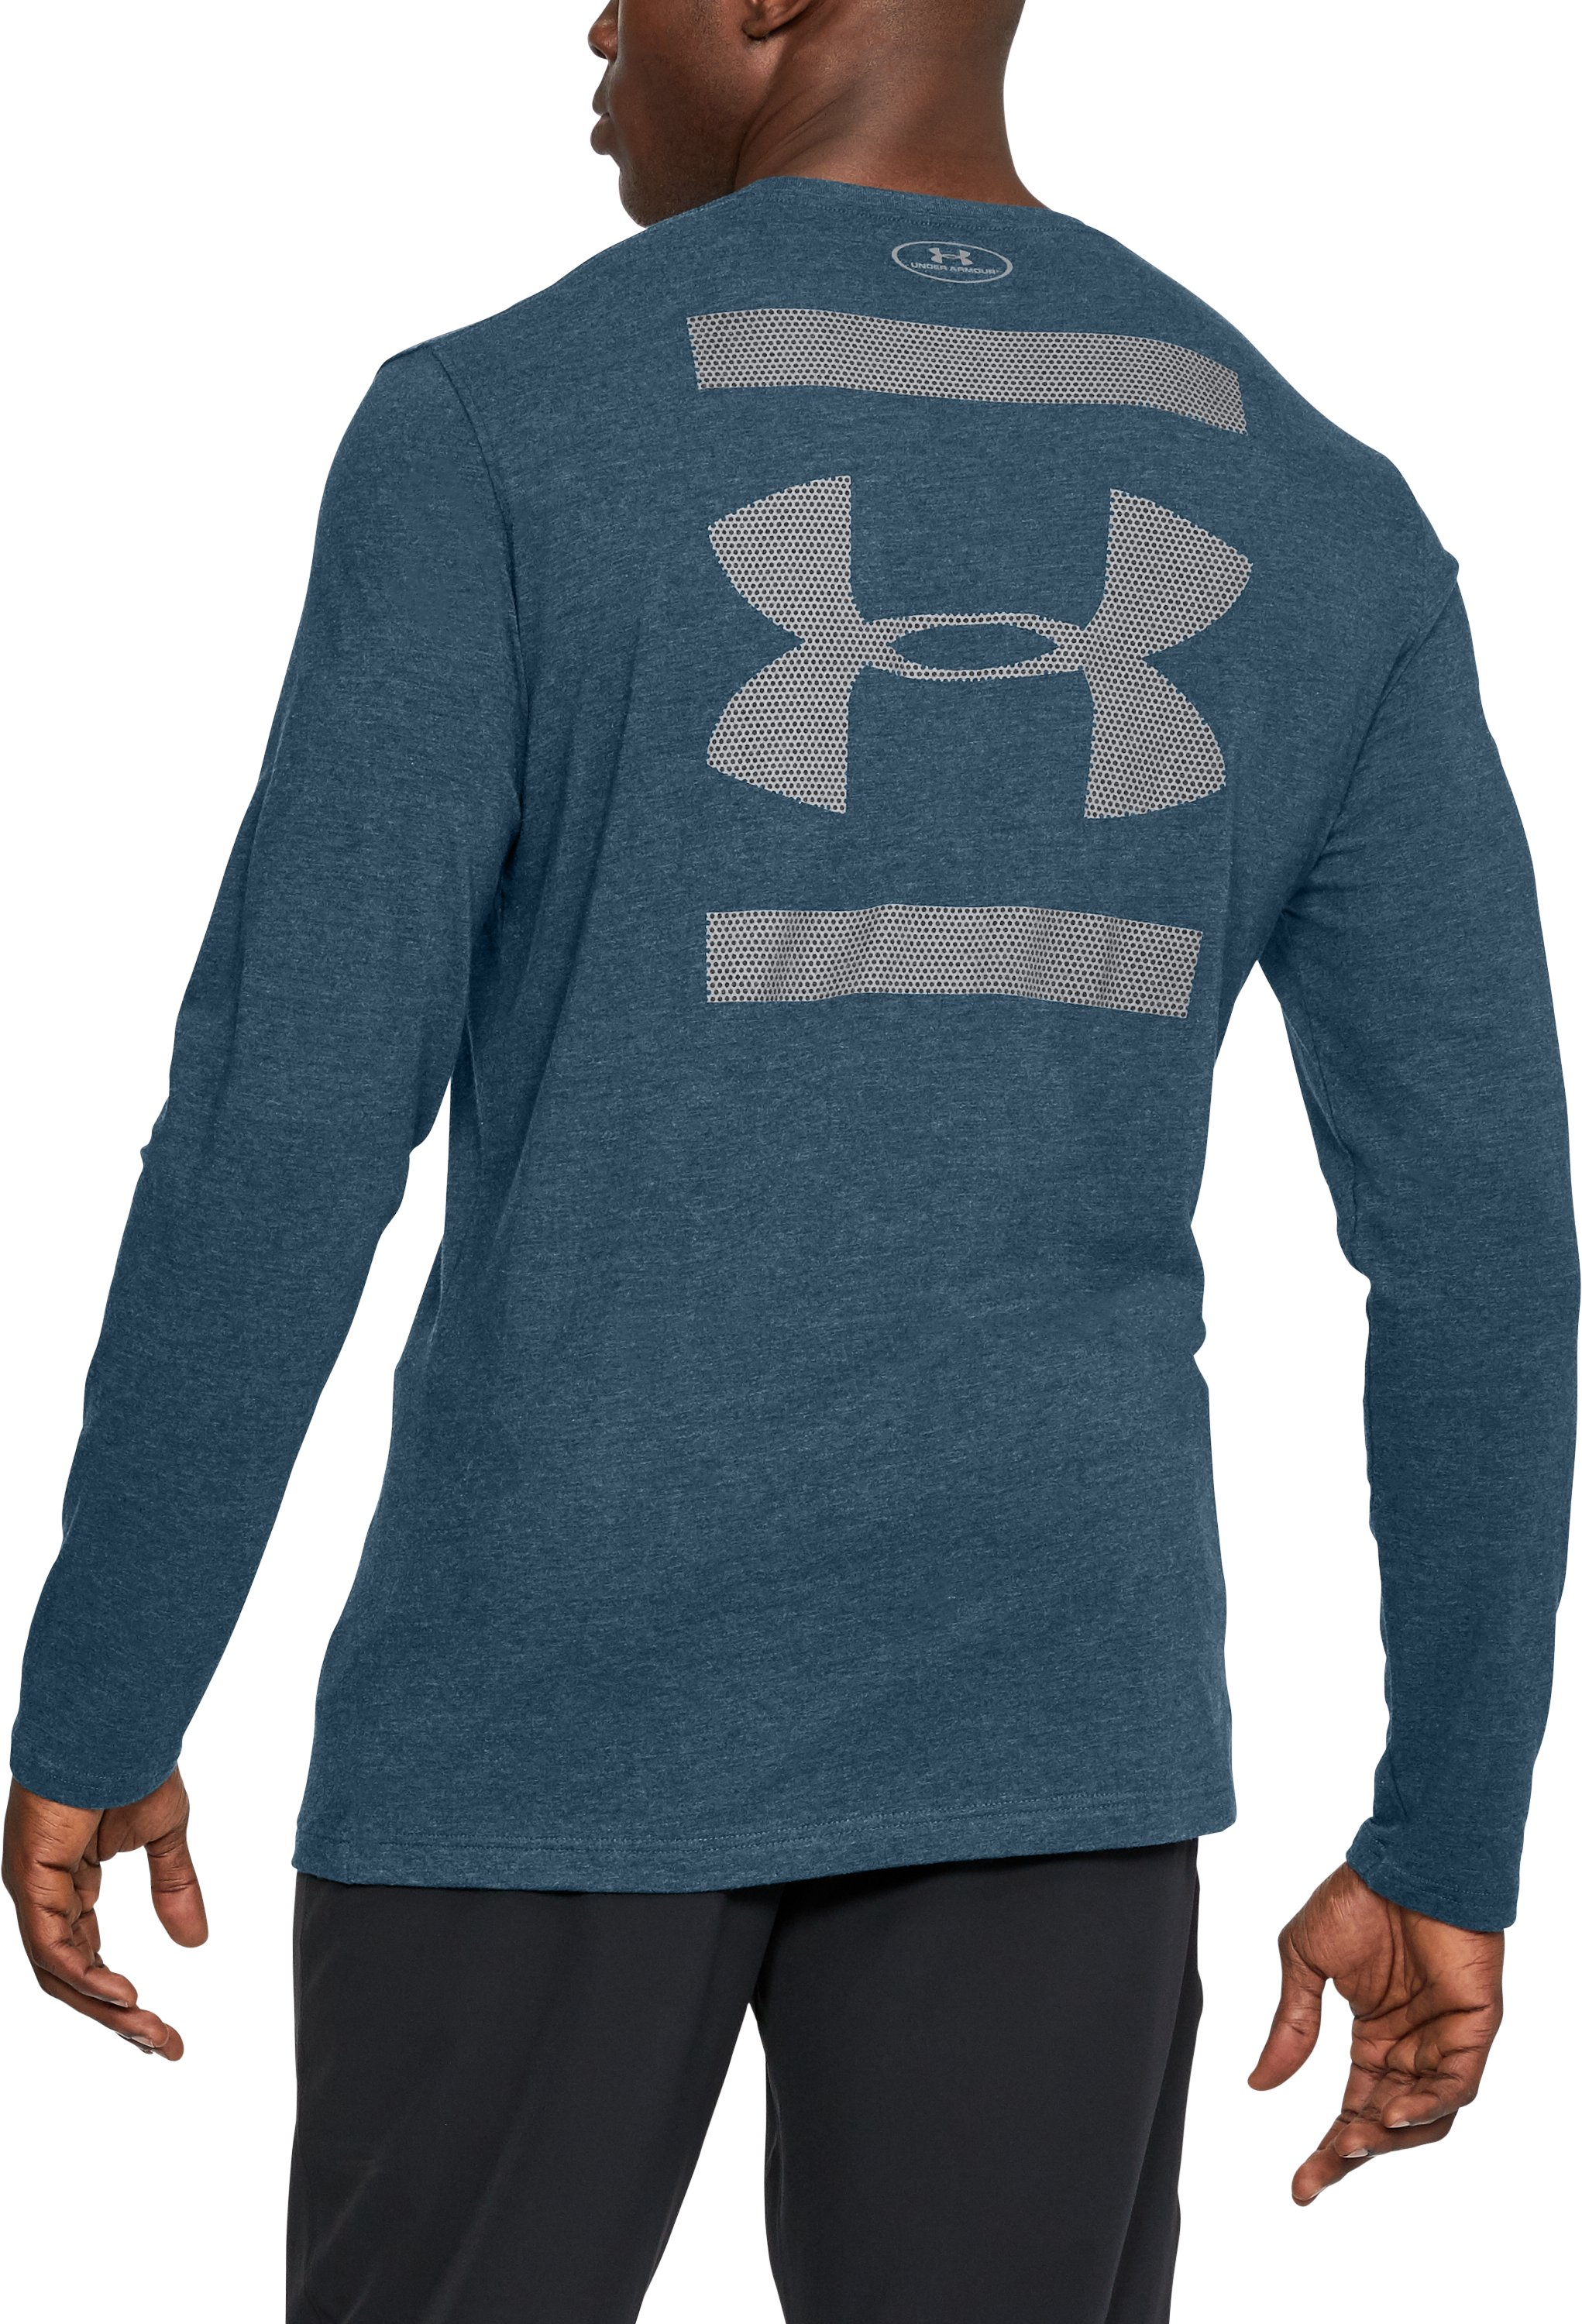 Men's UA Back Graphic Long Sleeve T-Shirt, TRUE INK MEDIUM HEATHER, undefined